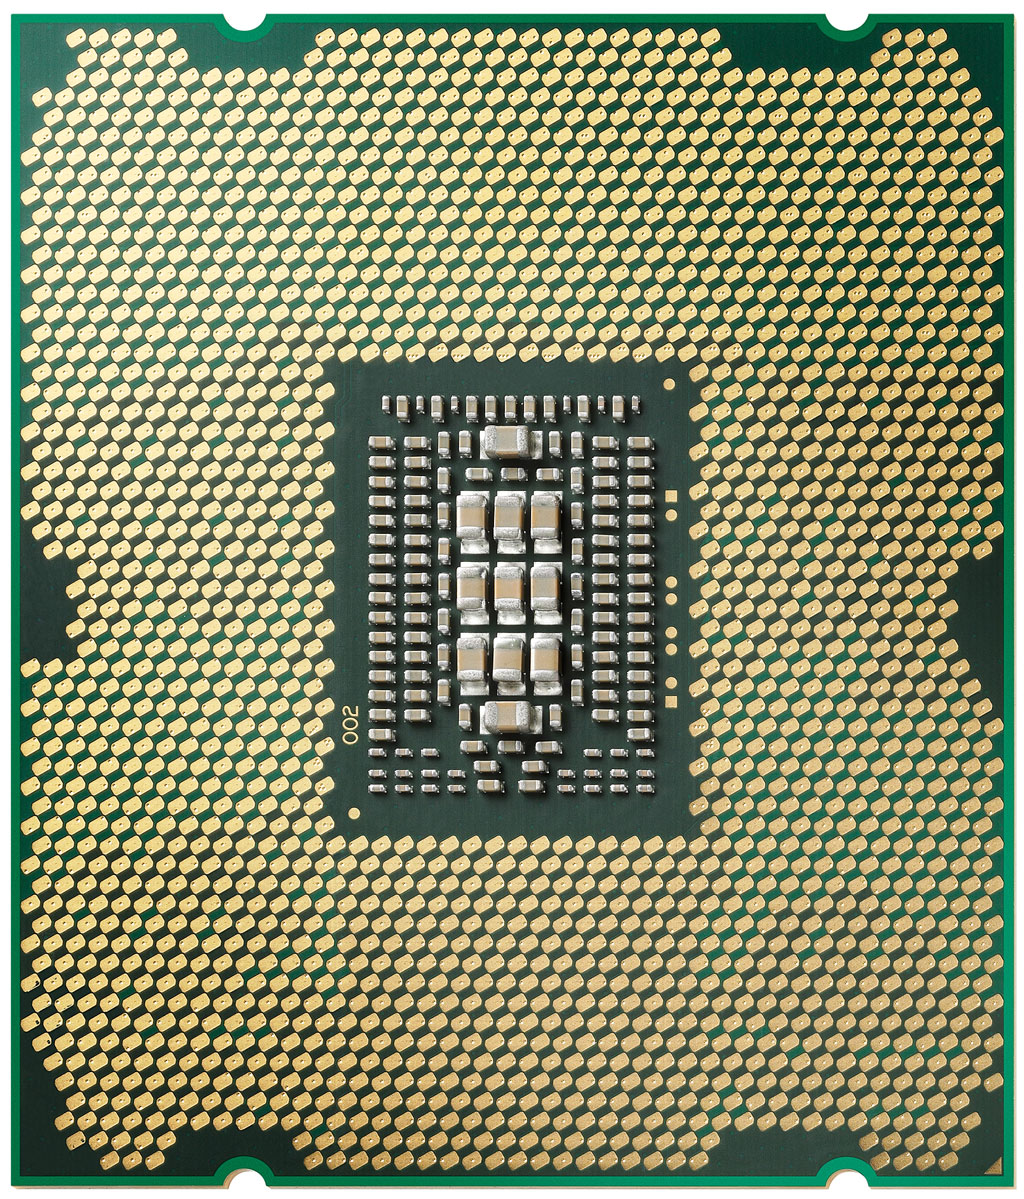 Intel Core i7-3960X Extreme Edition Sandy Bridge-E CPU